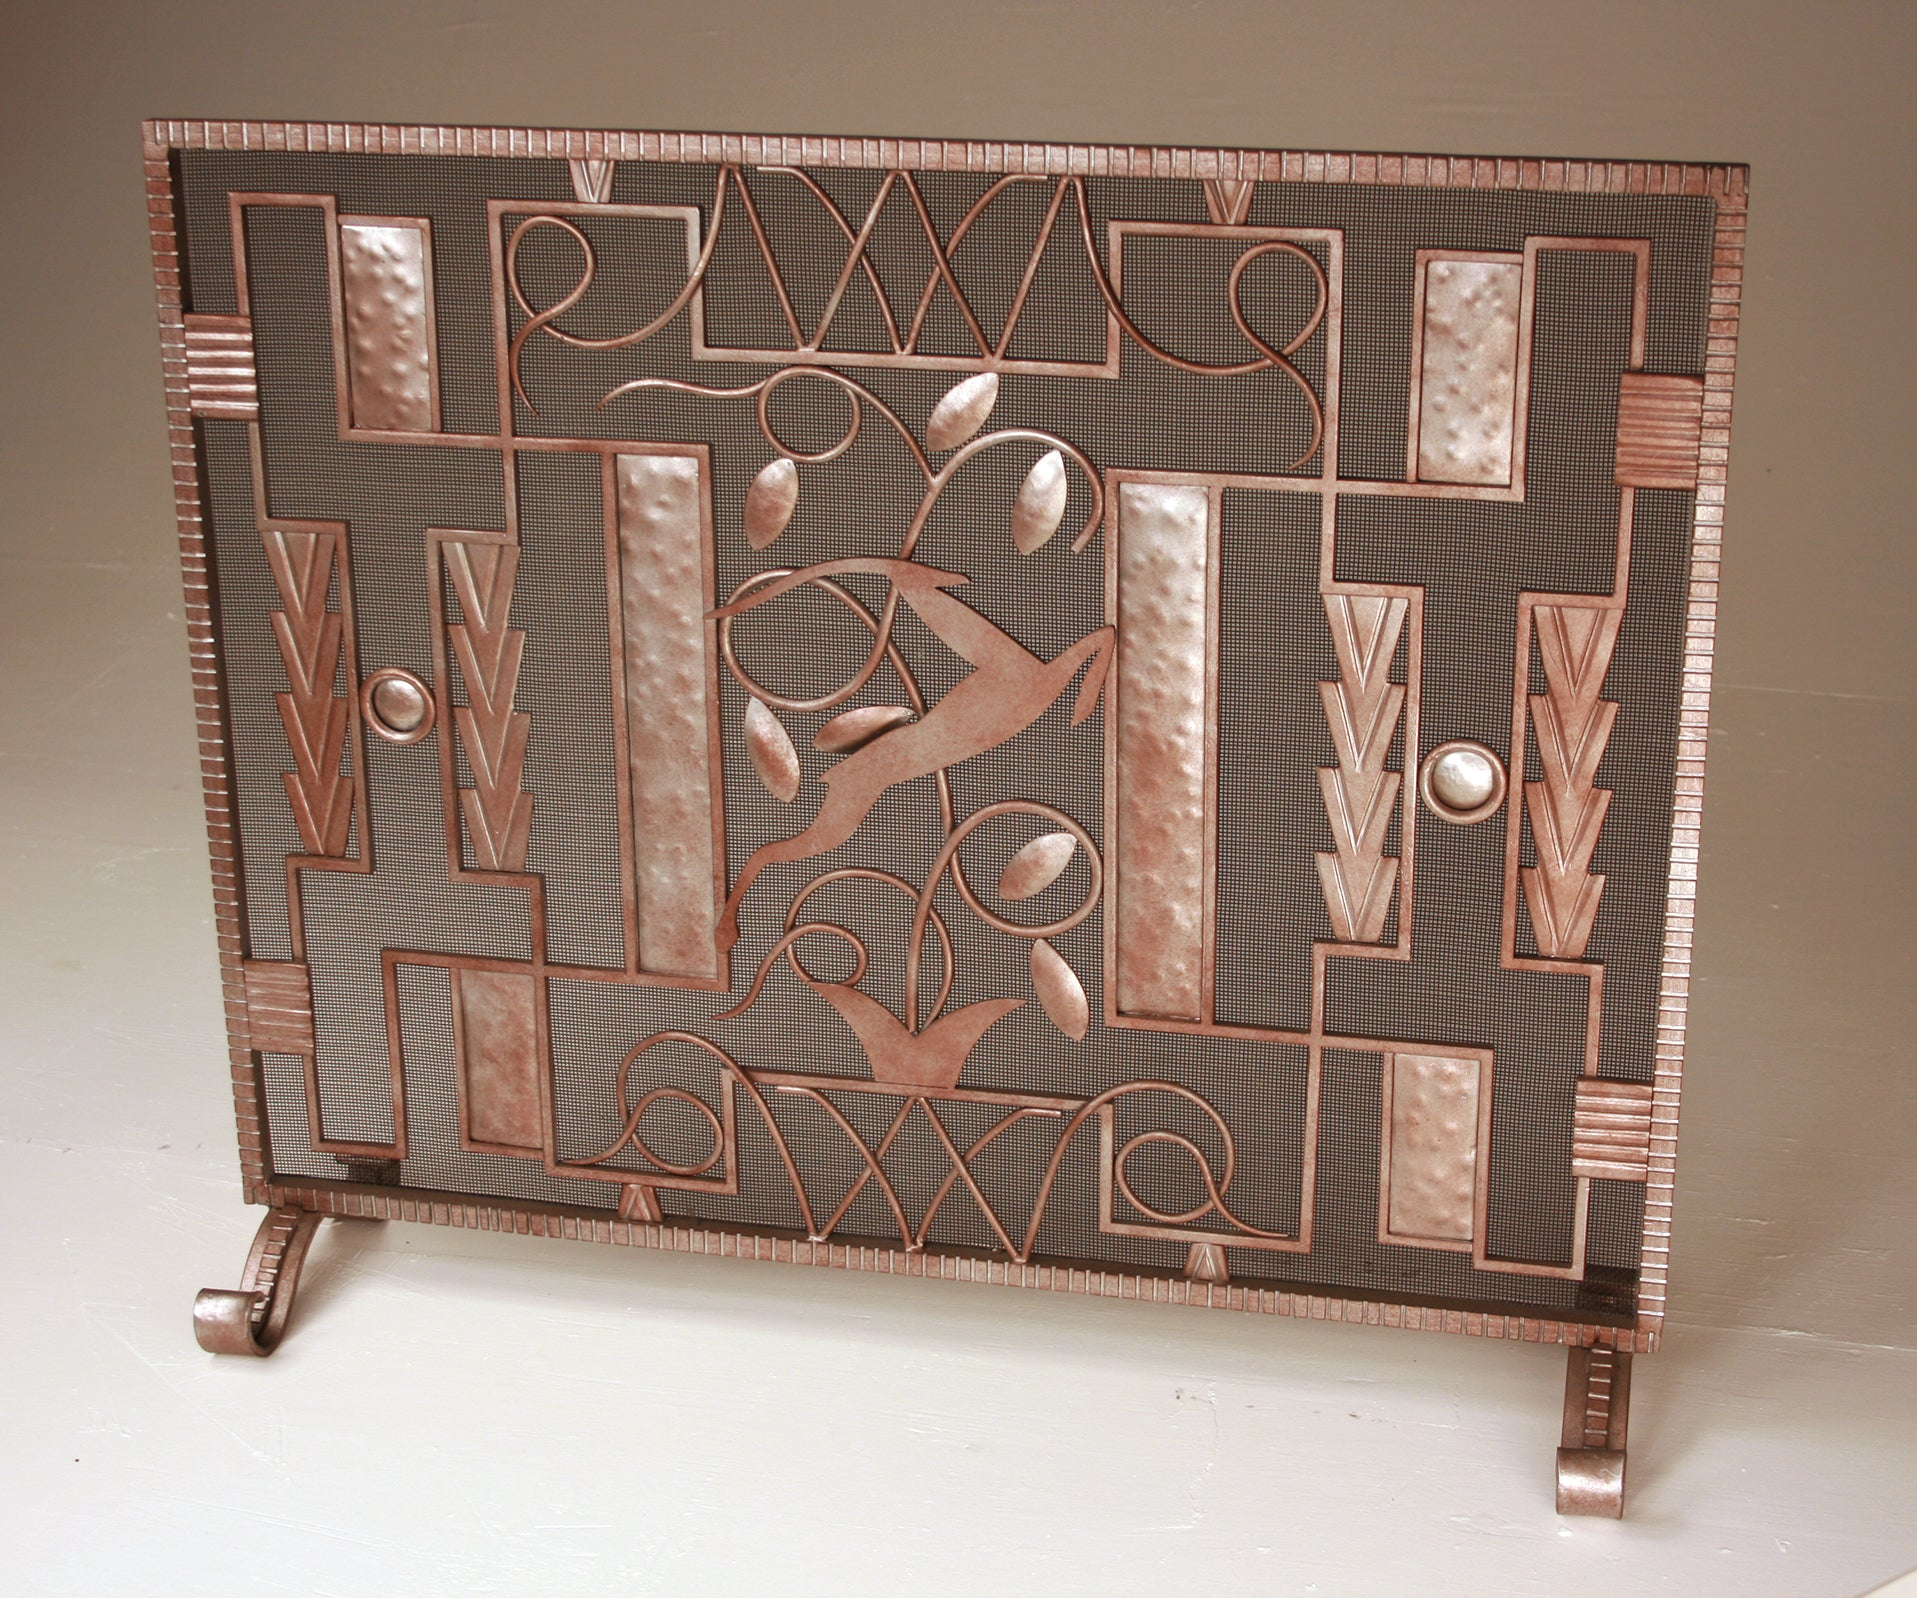 Are you looking for Art Deco fireplace screens and doors online? Explore our beautiful collection of Art Deco fireplace screen doors within reasonable prices.